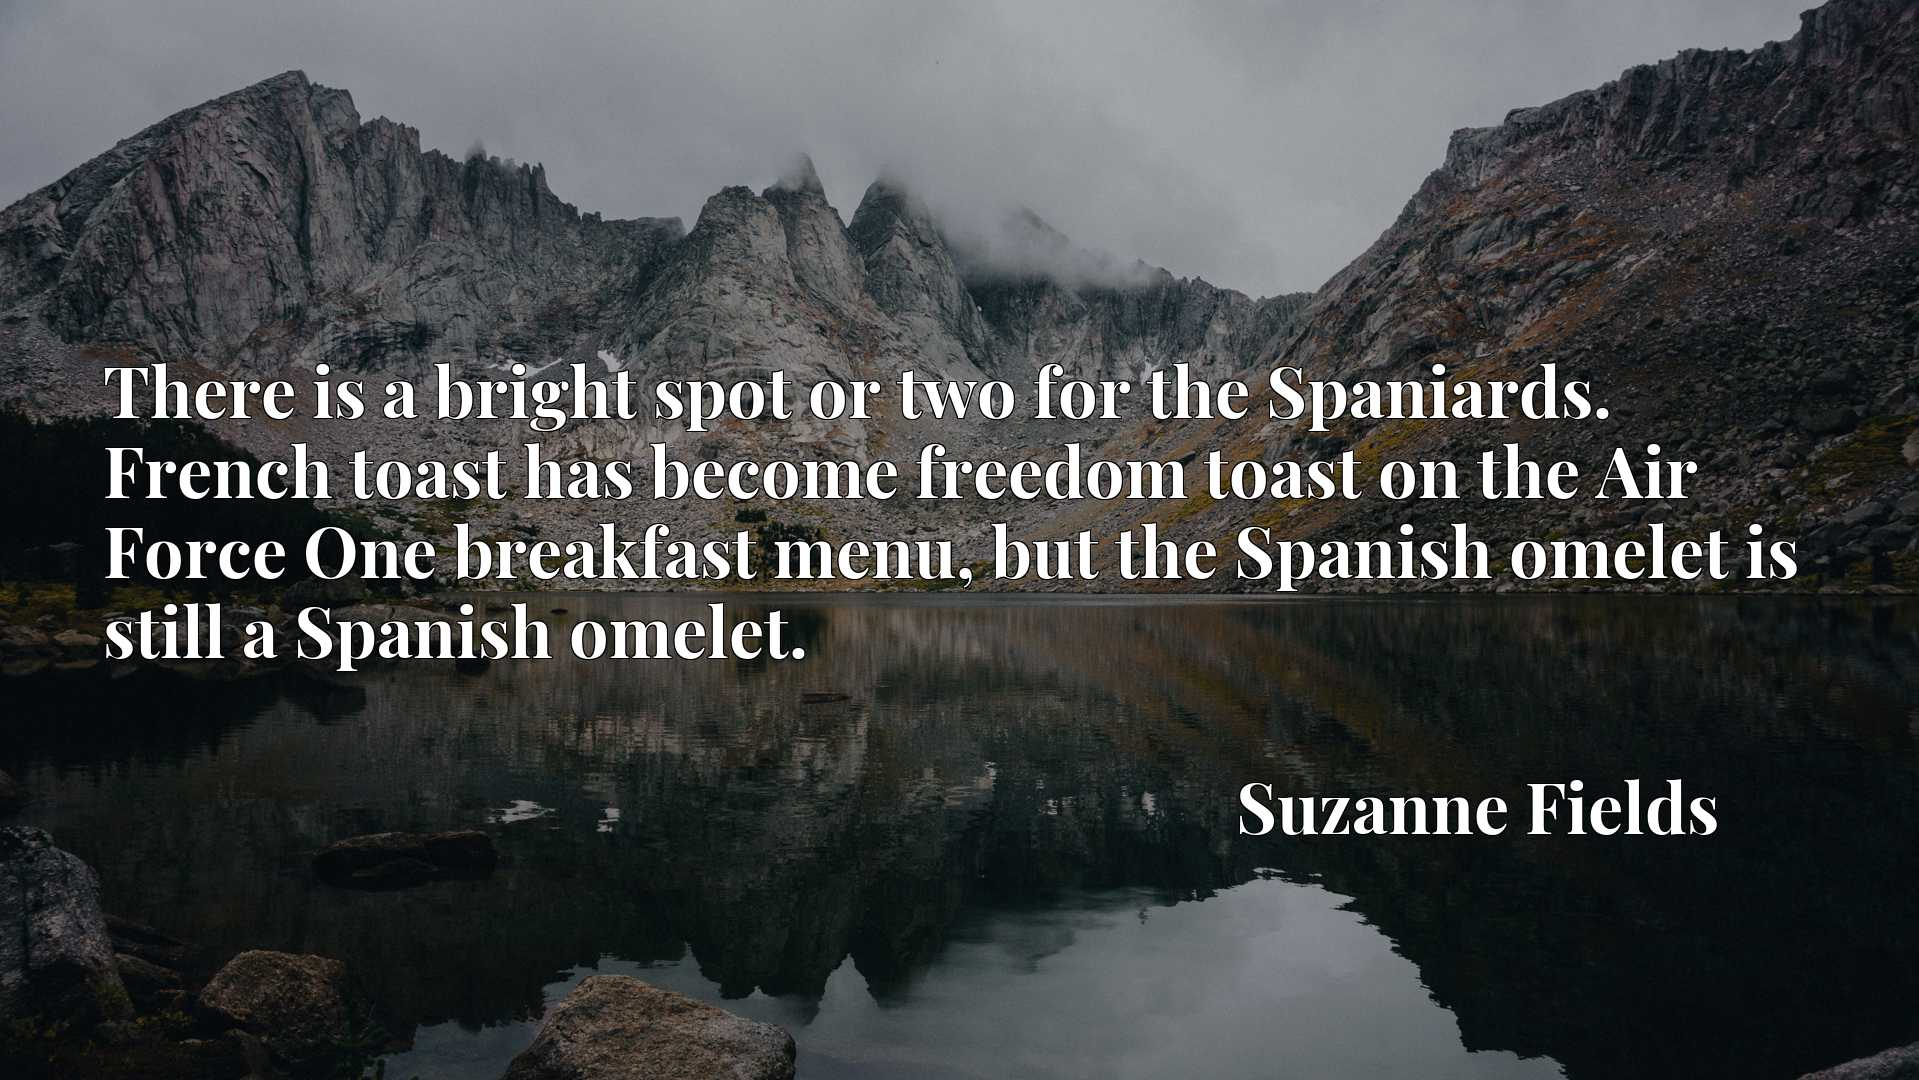 There is a bright spot or two for the Spaniards. French toast has become freedom toast on the Air Force One breakfast menu, but the Spanish omelet is still a Spanish omelet.